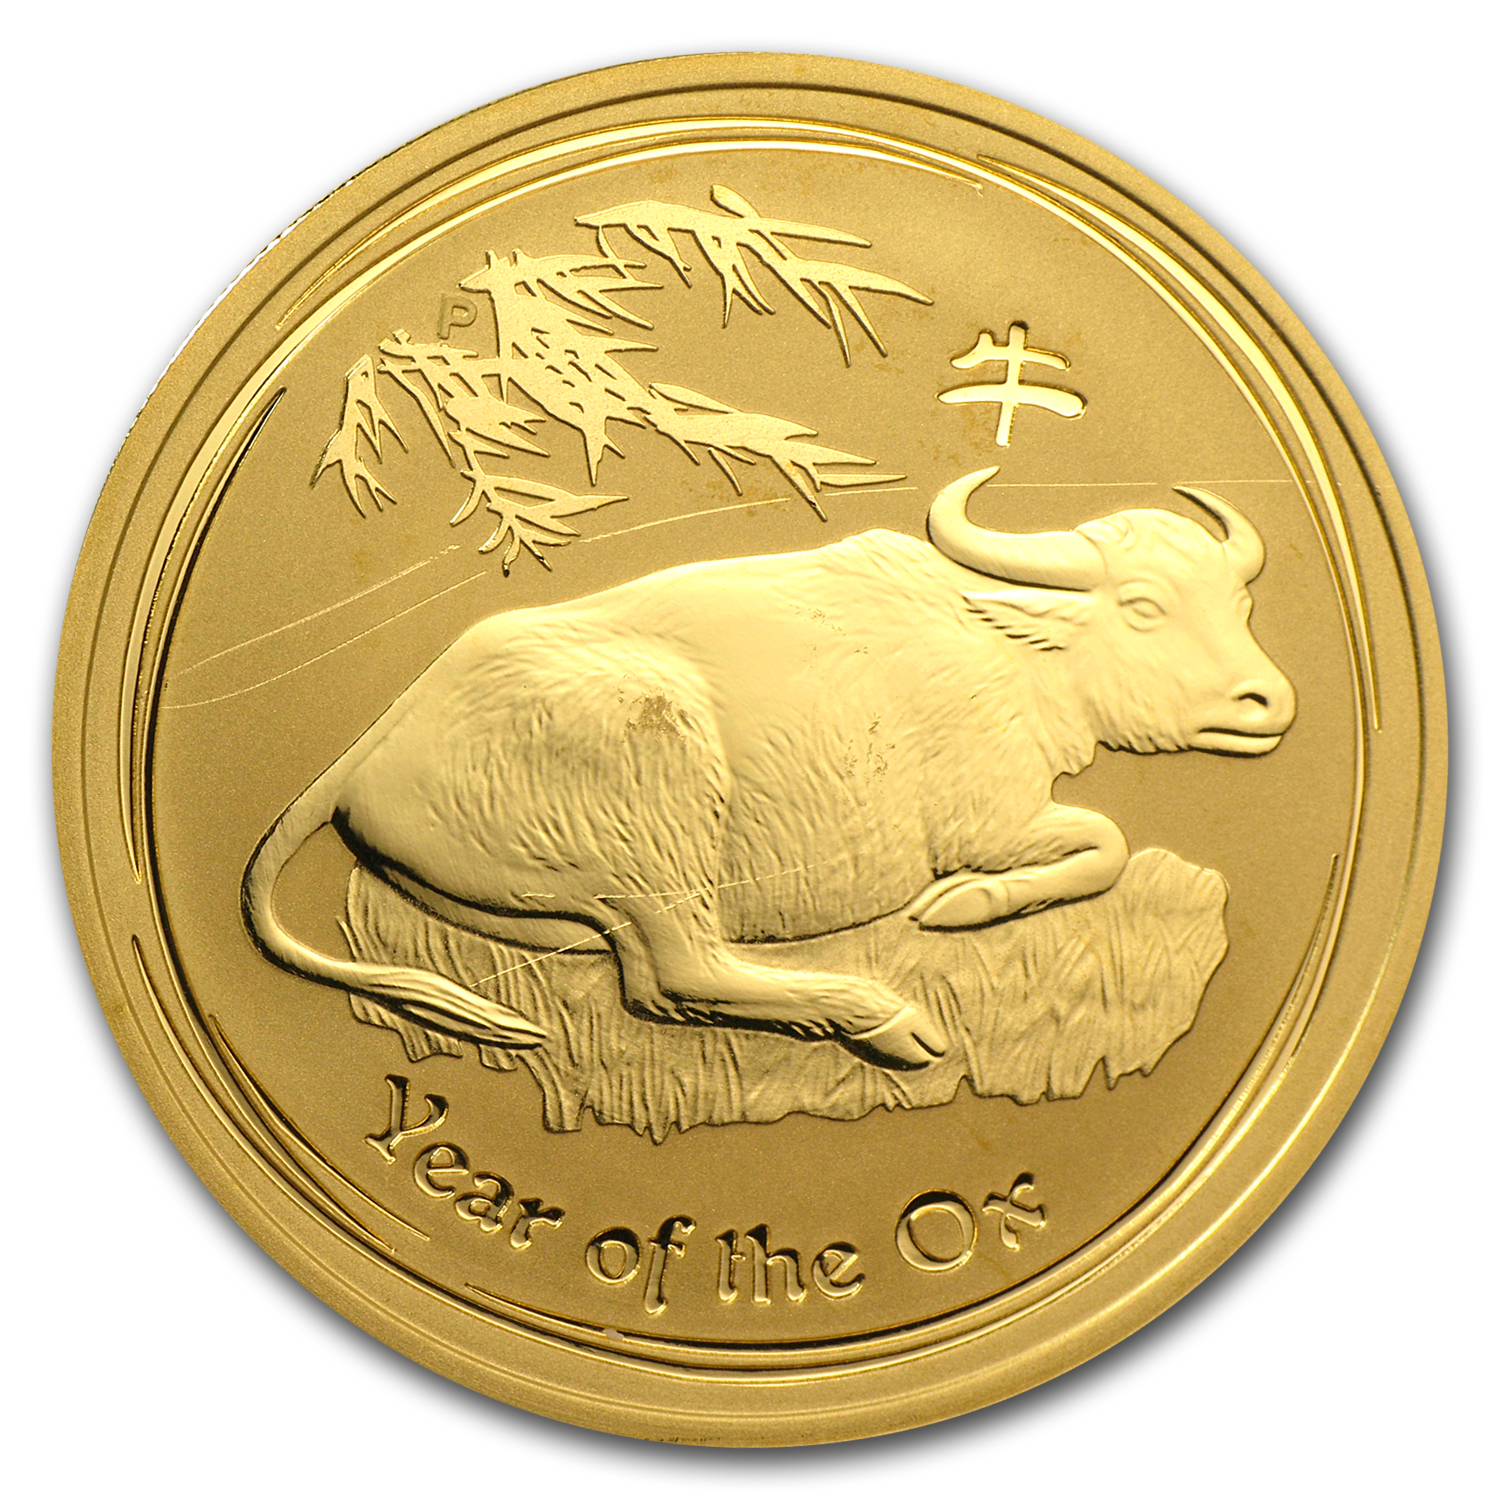 2009 1 oz Gold Lunar Year of the Ox Series II (Abrasions)